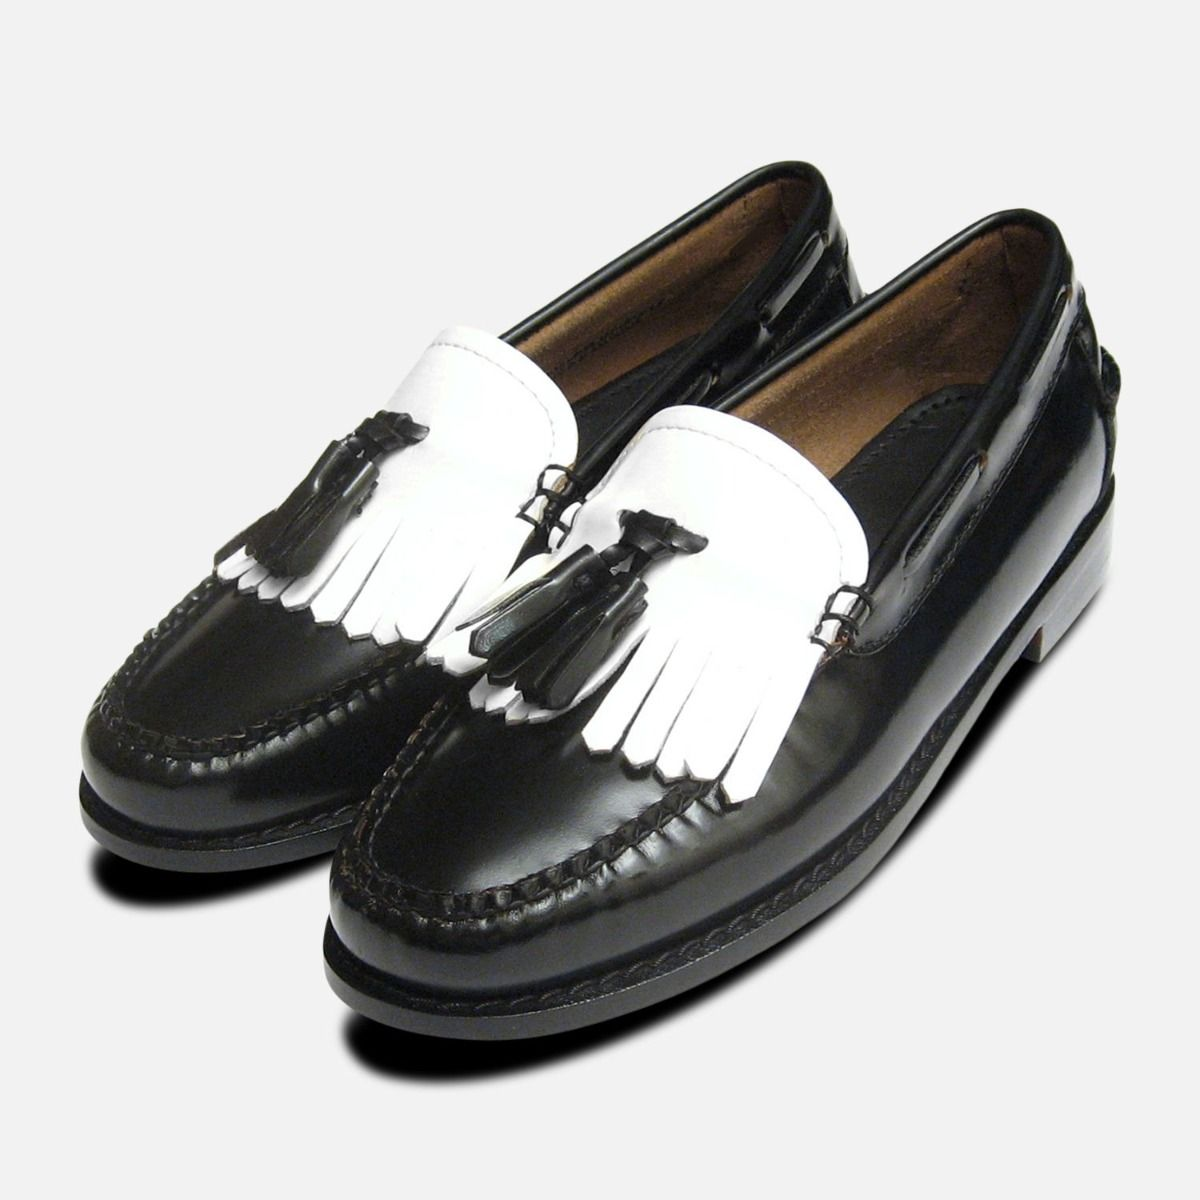 Ladies two tone black white tassel loafers